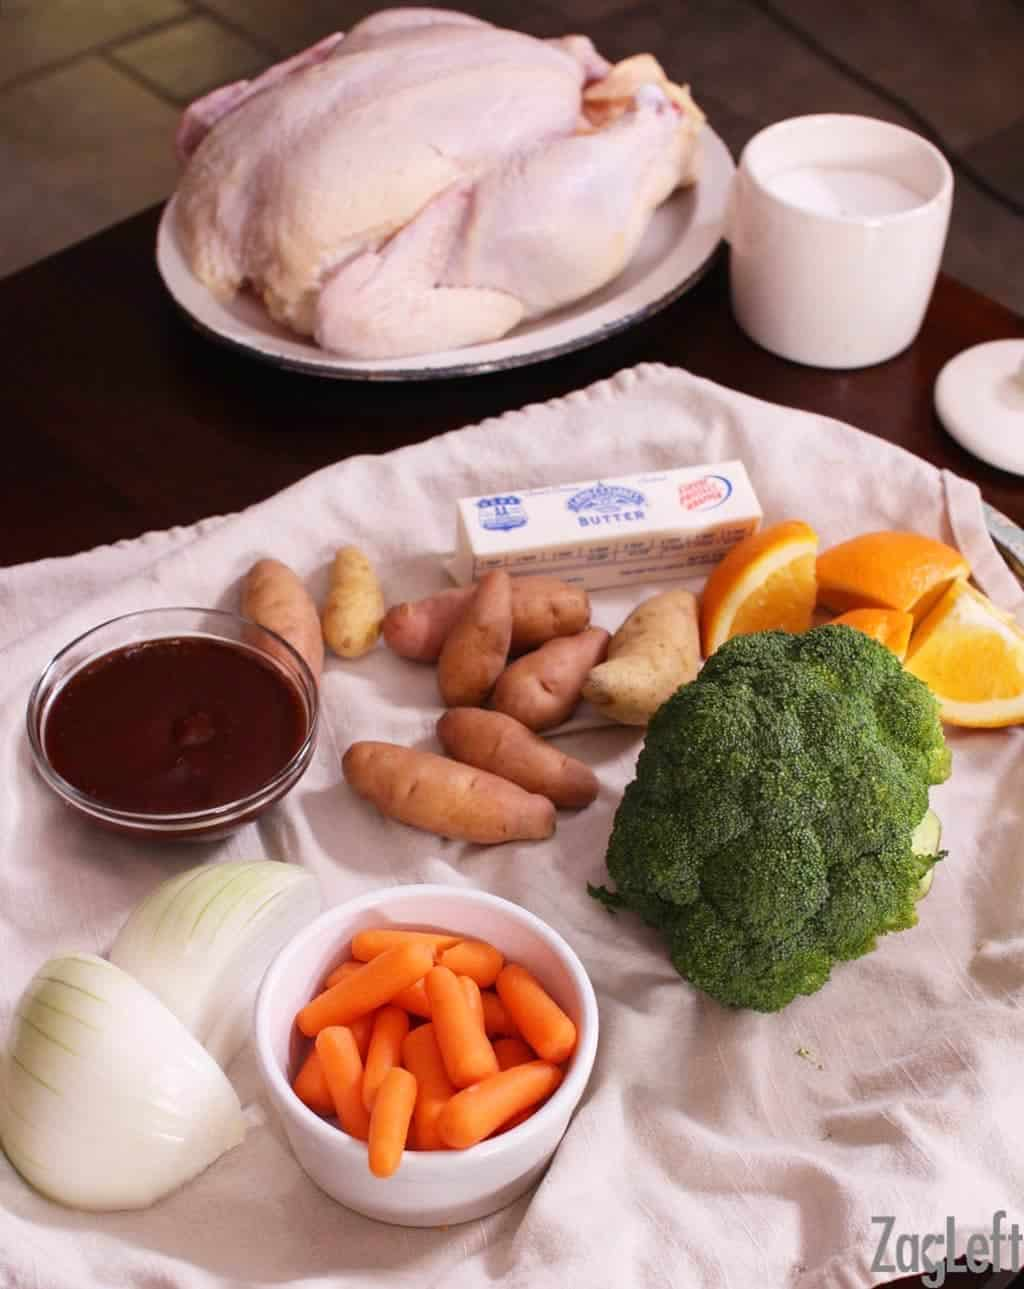 Ingredients needed to roast a BBQ chicken in the oven- Raw chicken, a stick of butter, four orange slices, eight potatoes, both halves of an onion, a small bowl of baby carrots, a small bowl of salt, and a small bowl of BBQ sauce